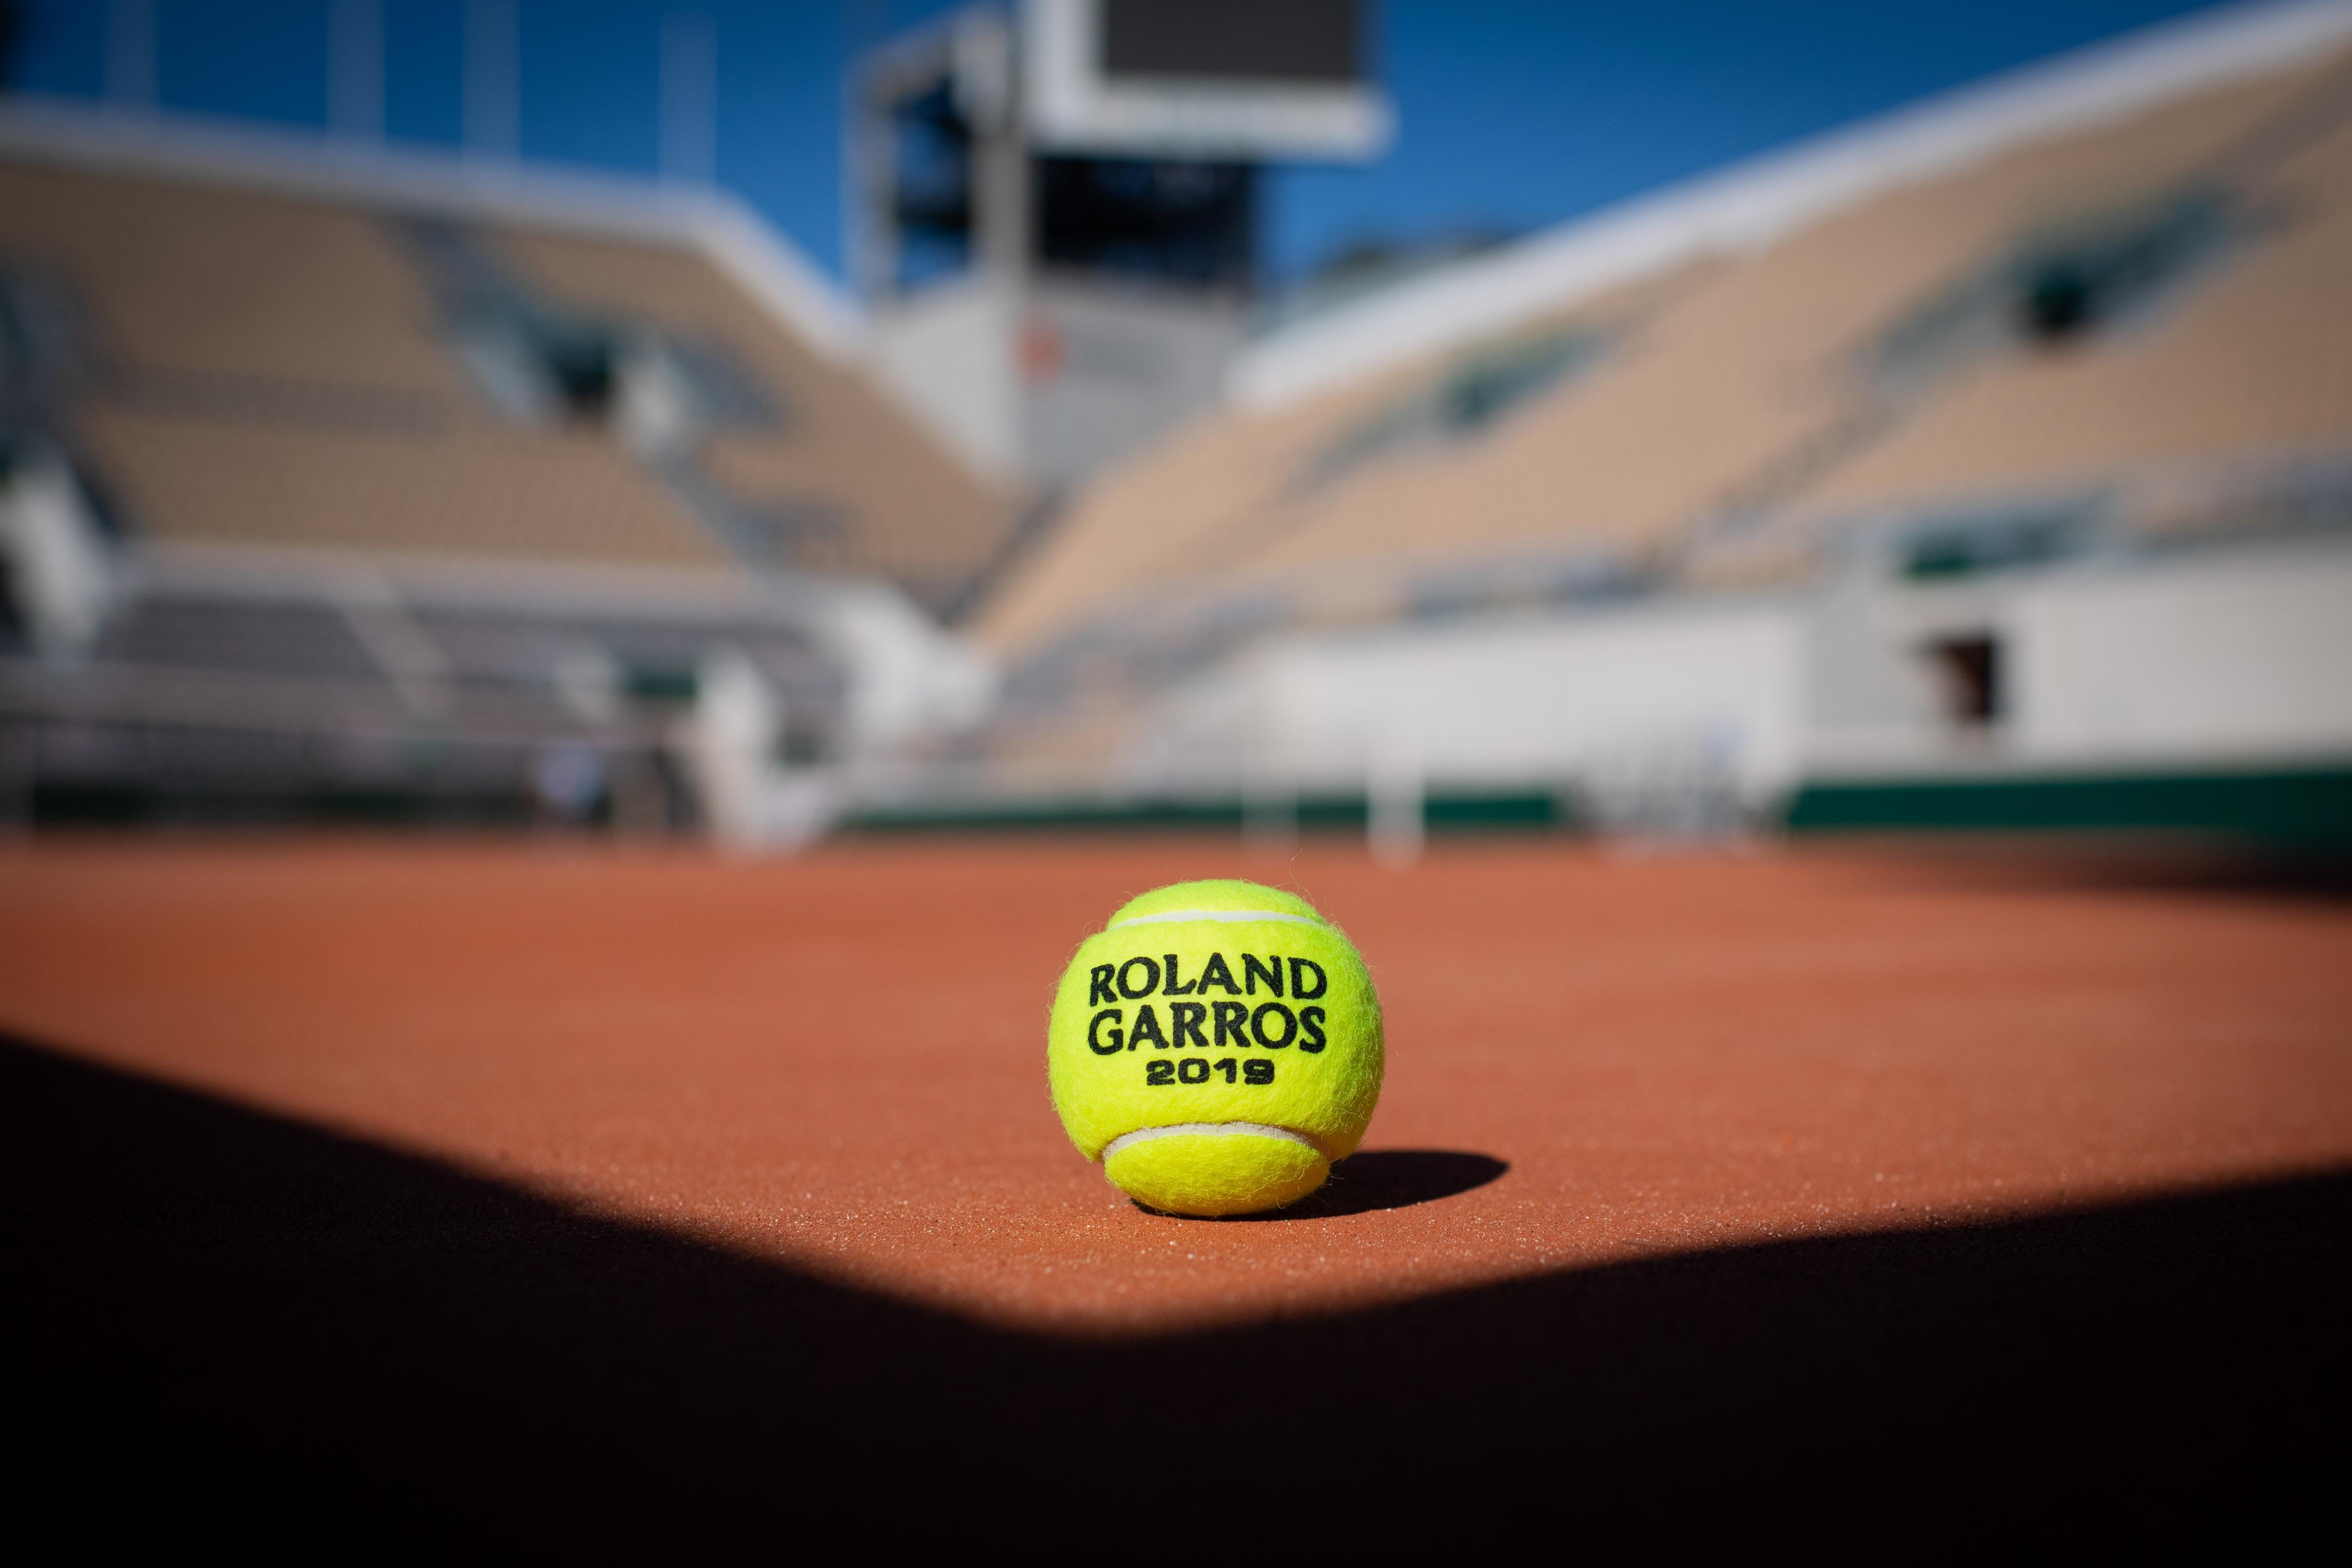 The Roland-Garros 2019 official ball on the red clay of the new Philippe-Chatrier court